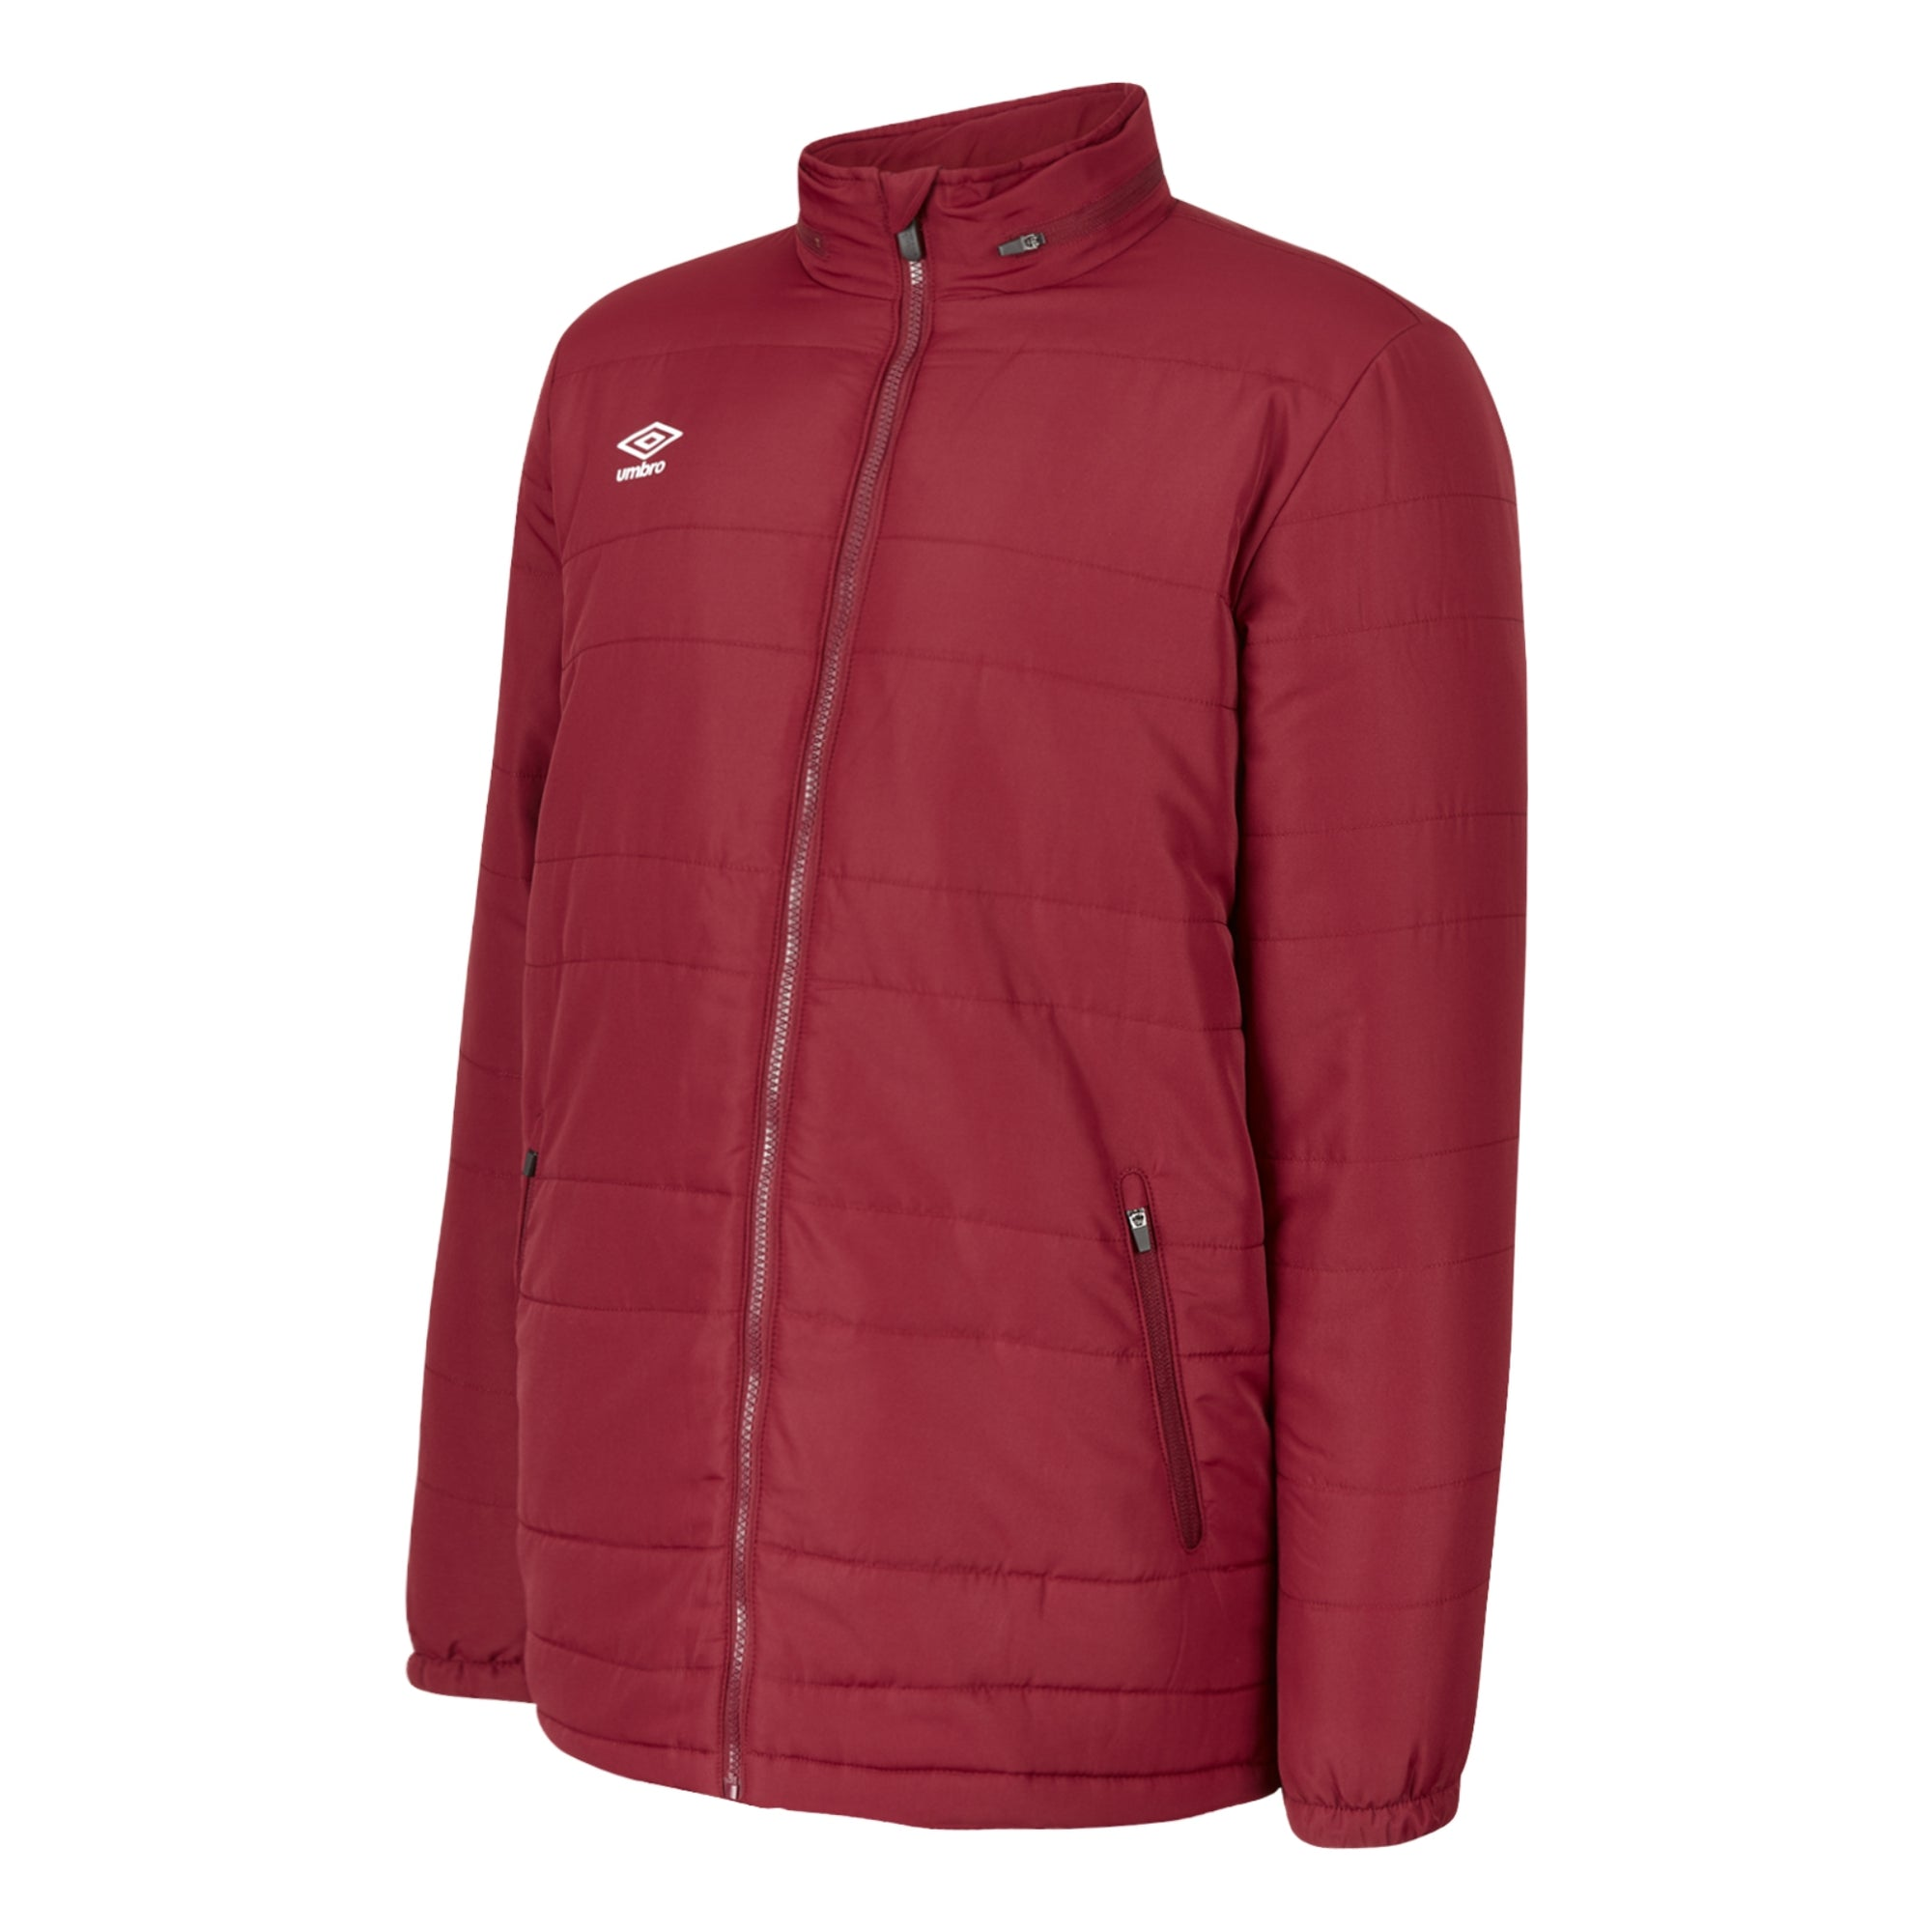 Umbro Club Essential Bench Jacket - New Claret